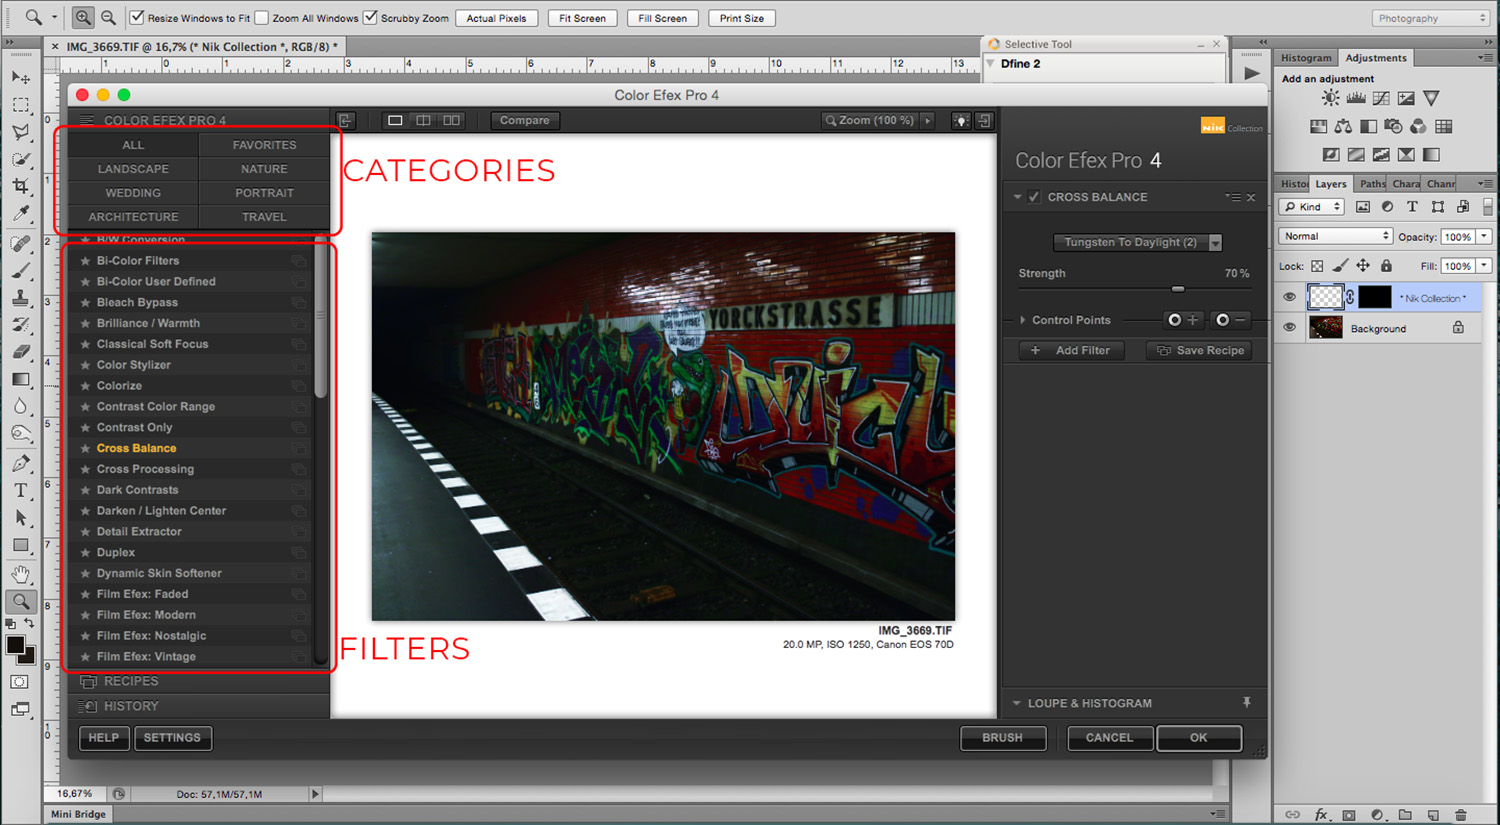 8 - How to Use the NIK Filter Collection with Photoshop - categories